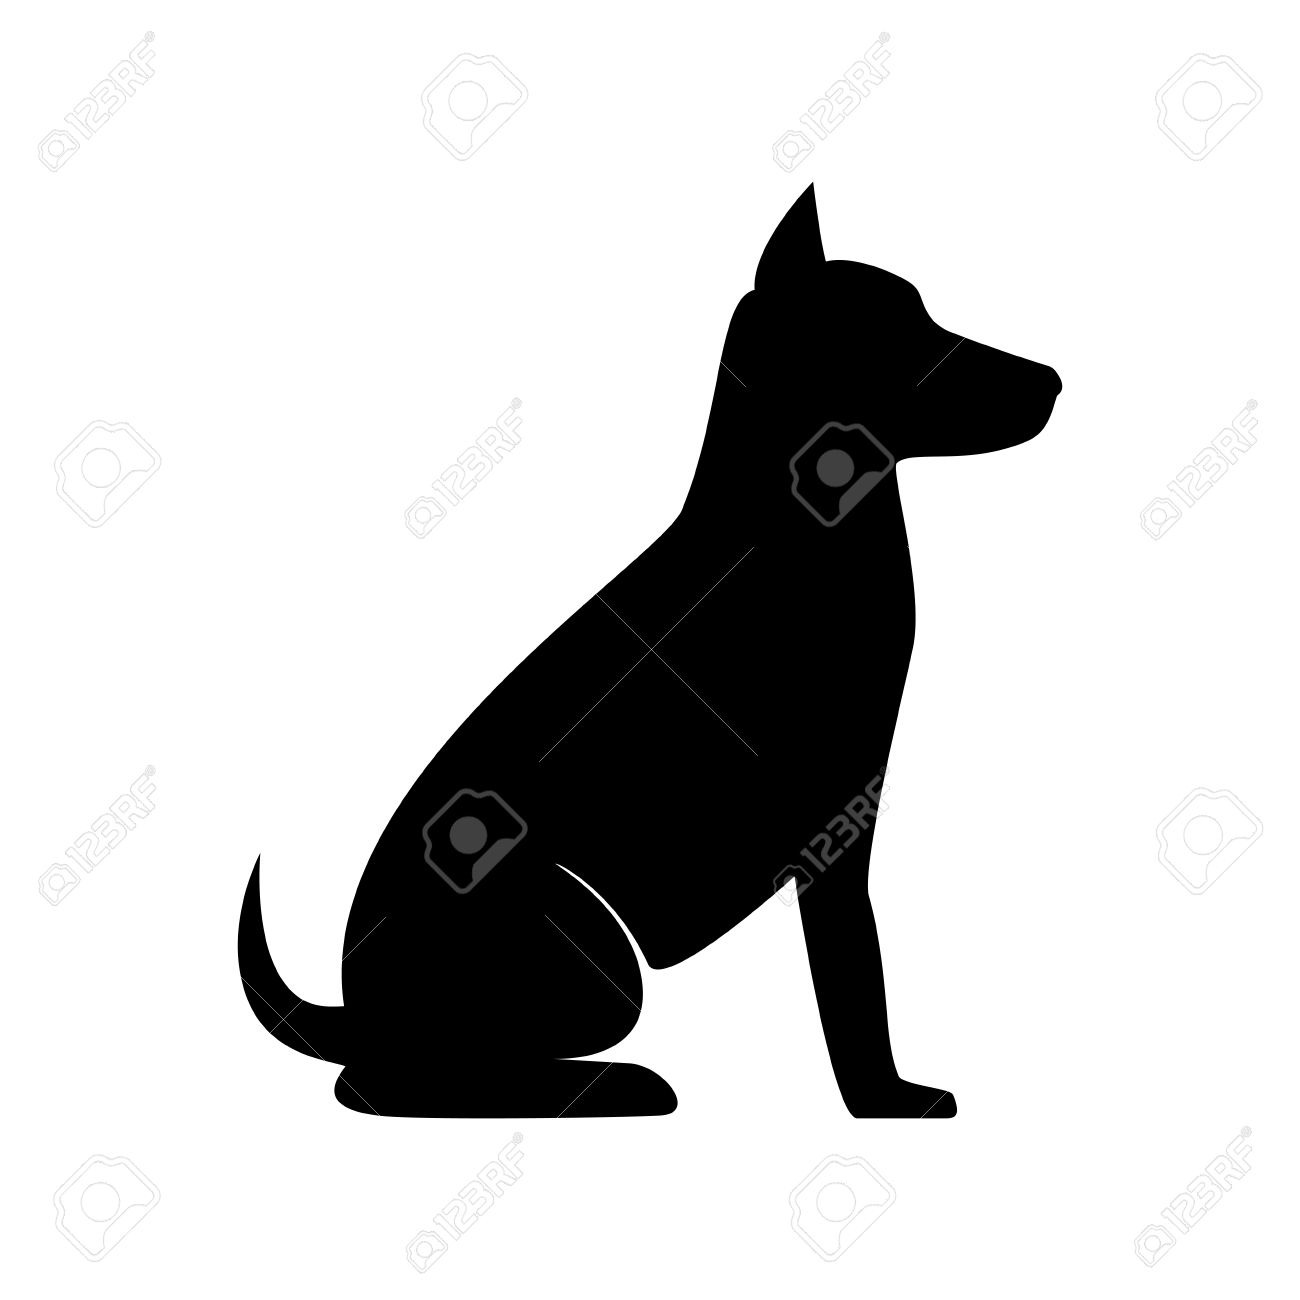 Dog Sit Pet Canine Animal Puppy Mascot Silhouette Vector